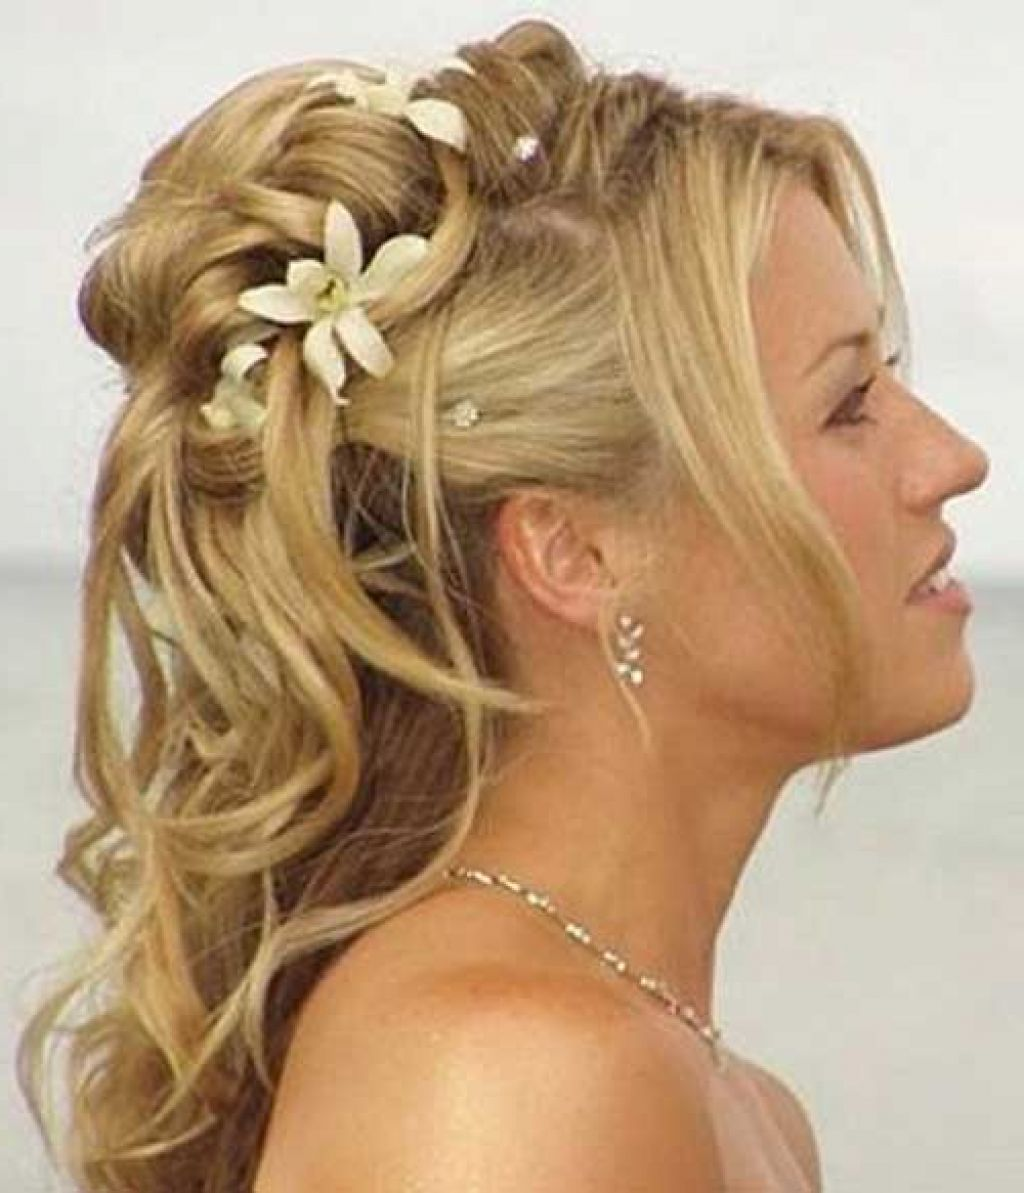 Superb The Best Beach Wedding Day Hairstyles For Women Latest Hair Short Hairstyles For Black Women Fulllsitofus